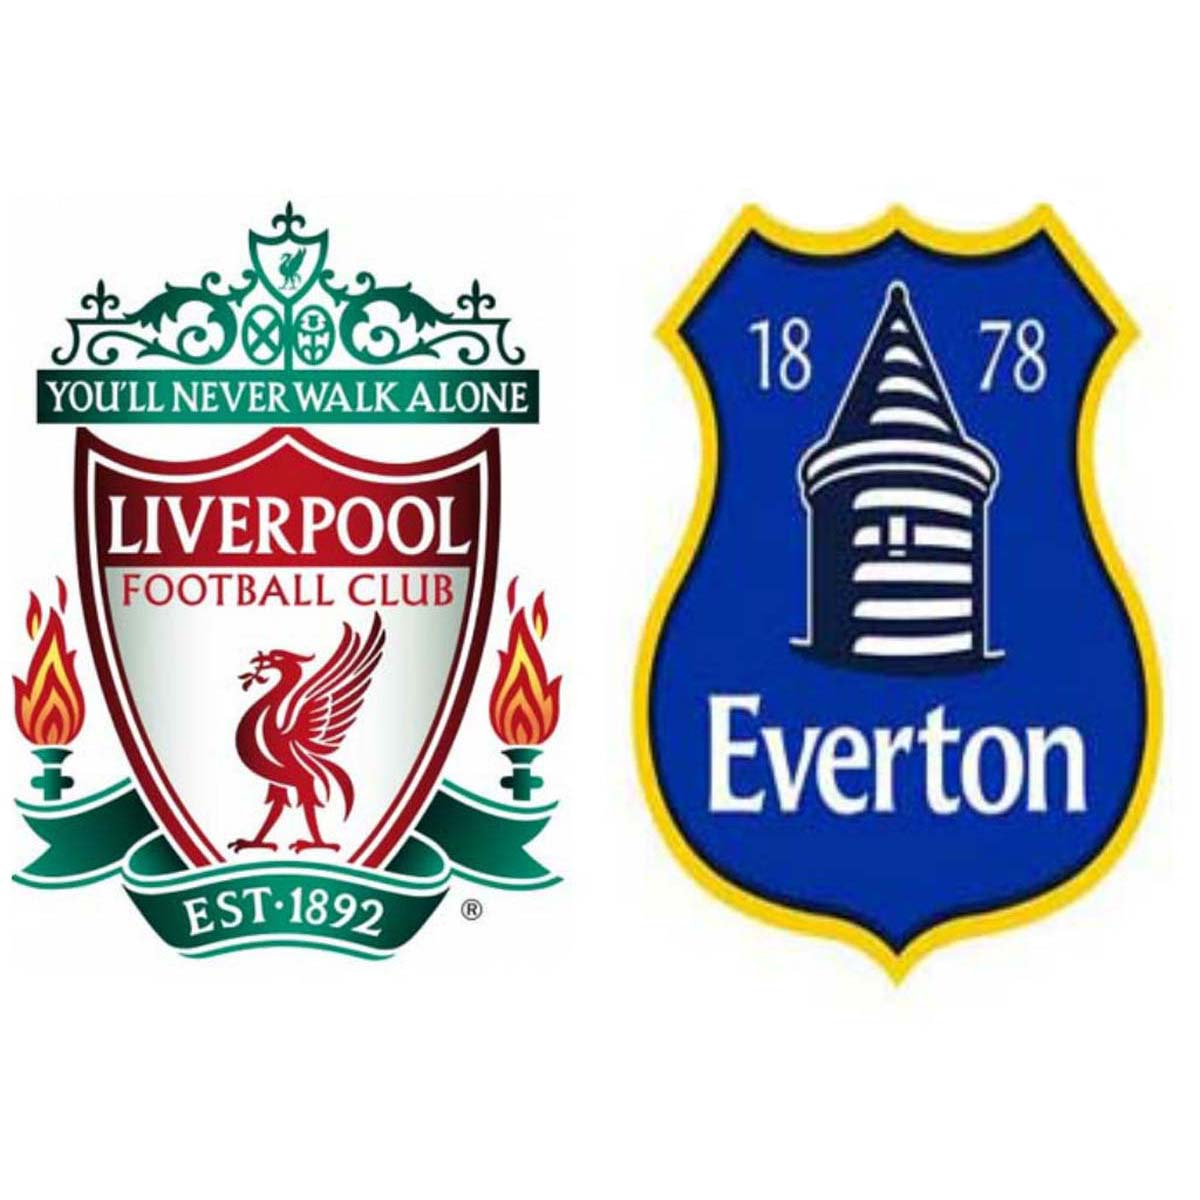 Merseyside Police has thanked the vast majority of fans for their behaviour at the Liverpool v Everton derby game last night.